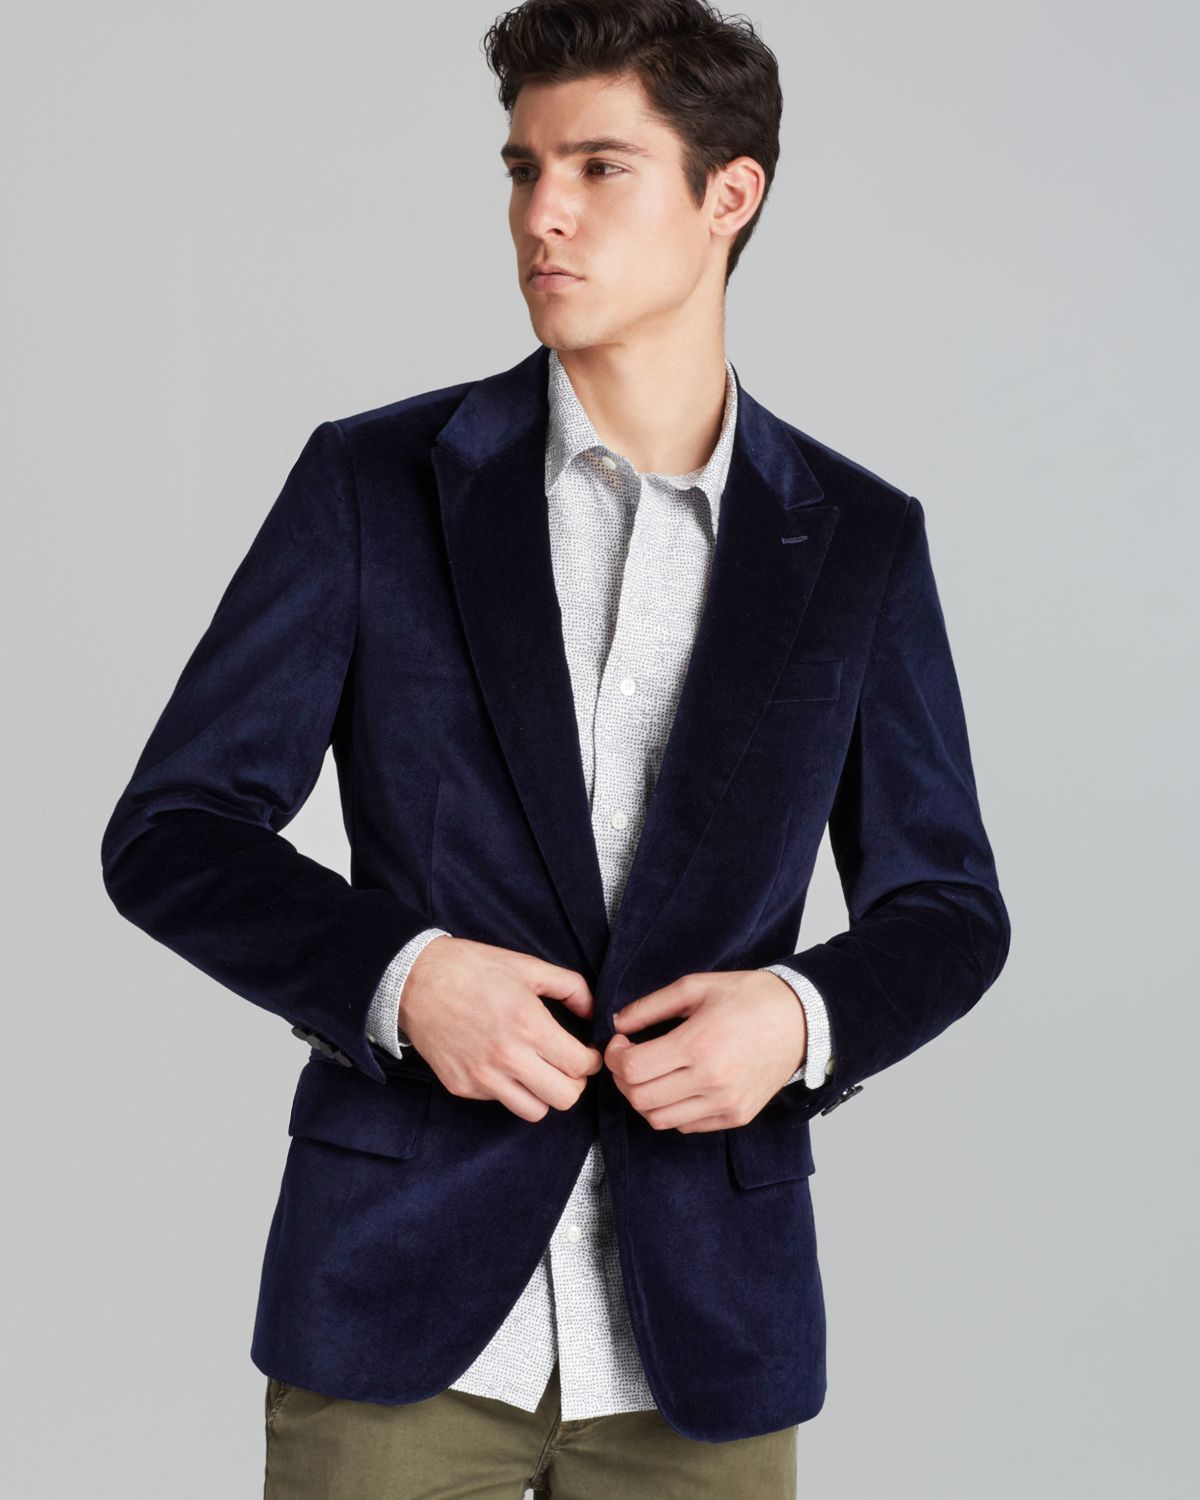 Discover Zegna fall winter collection double-breasted blazers for men made of wool, silk or cotton. Perfect for casual and formal occasions.